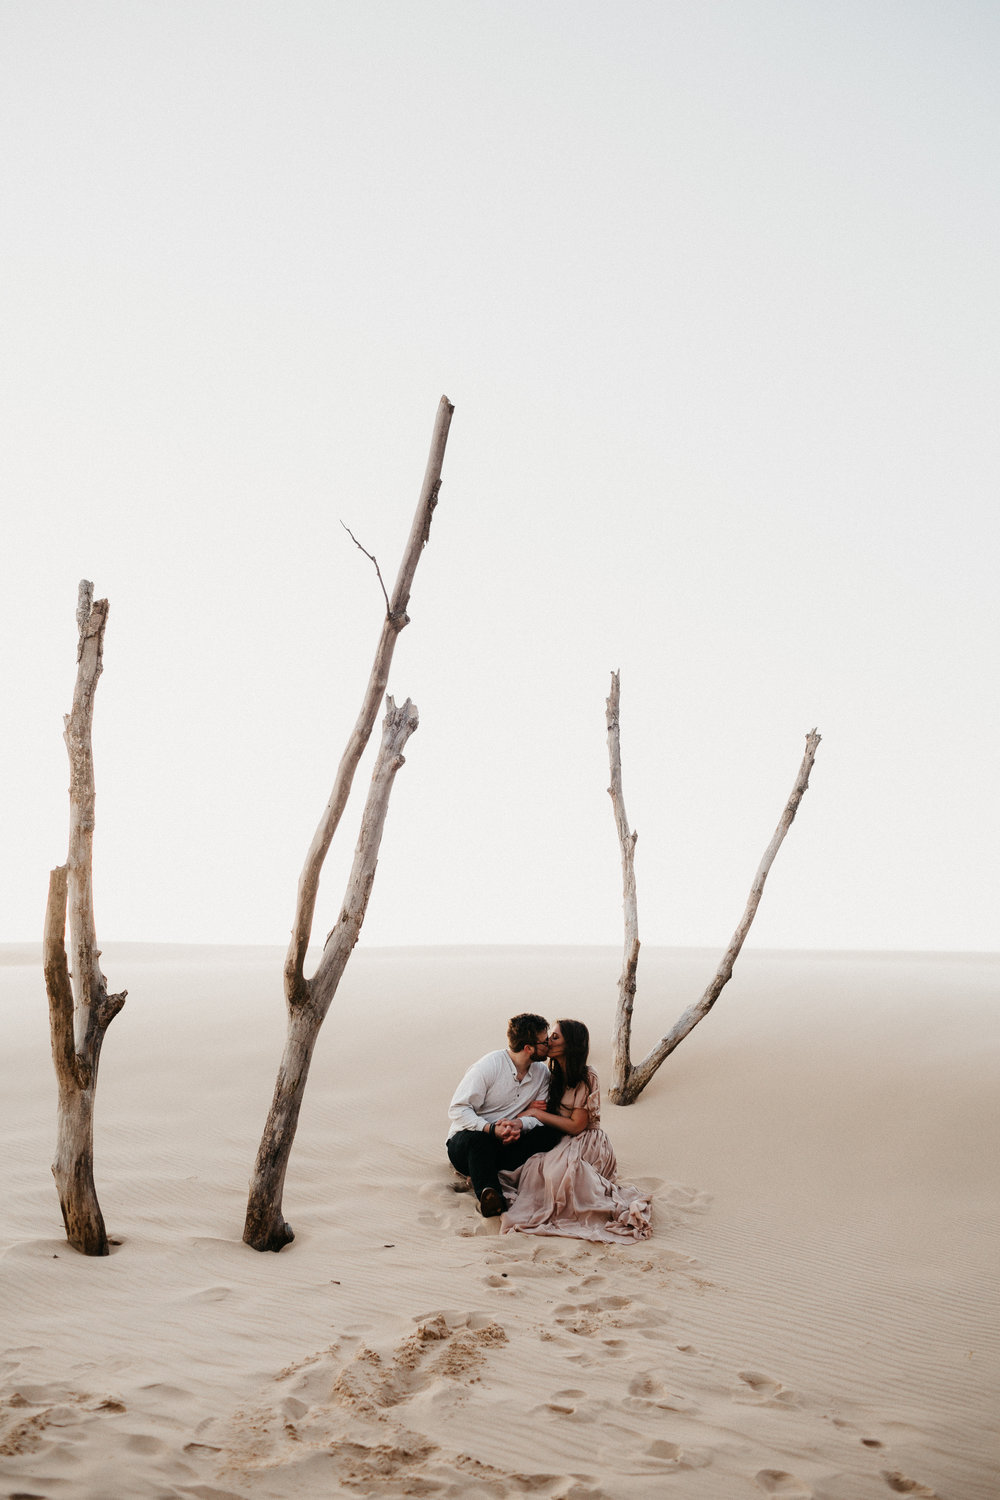 eastlyn-bright-silver-lake-sand-dunes-michigan-wedding-engagement-photographer-79.jpg